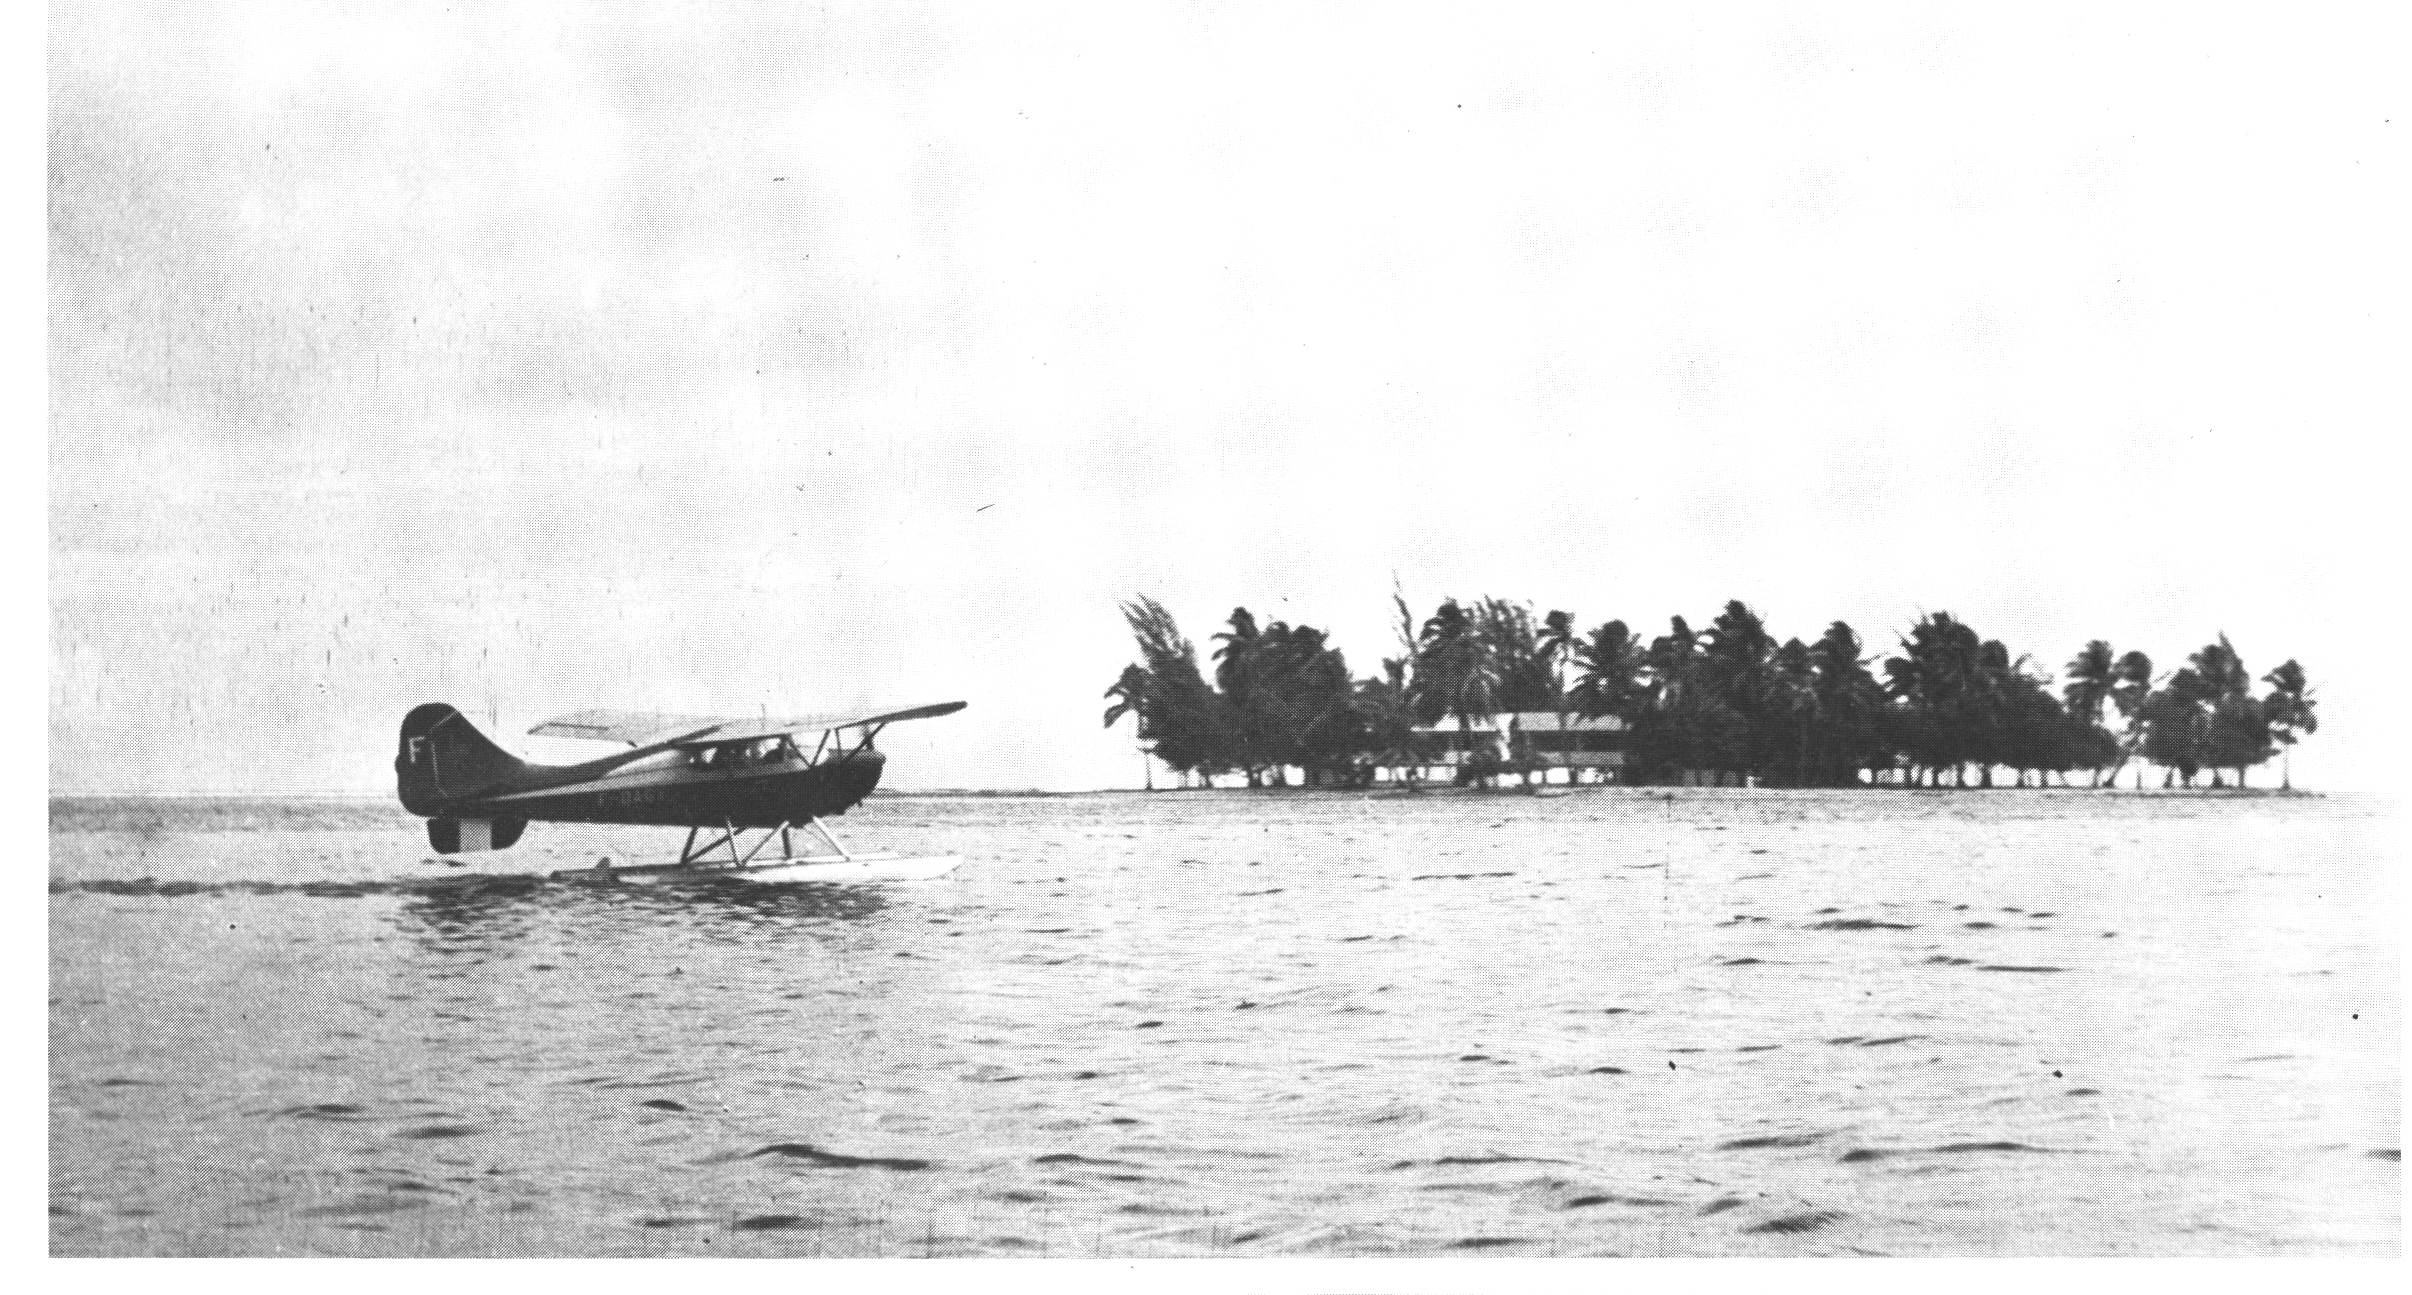 tahiti et l u2019aviation - 1964  a u00e9ro-club de tahiti